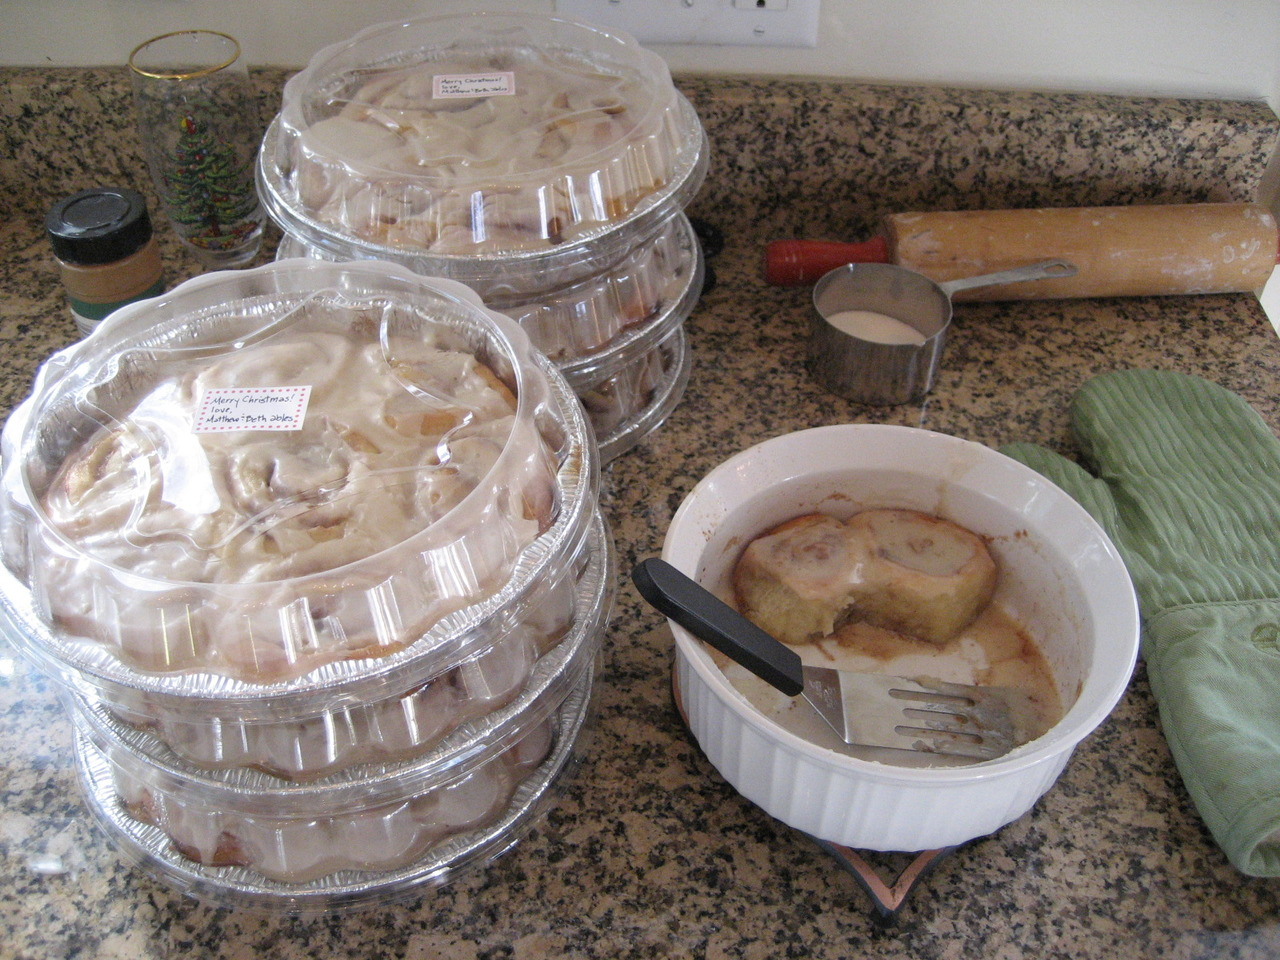 I baked eight pans of cinnamon rolls Sunday morning because I got it in my head that we should have something really yummy and awesome to give to people like Matthew's work friends, our pastor, and our sweet neighbors.   And like ideas like this, the end result was good, and it was fantastic to hand out warm-from-the-oven rolls to friends…but it left me tired and grumpy the rest of the day because I had to get up so early.  It was as if I gave every ounce of niceness and sweetness out with these, and Matthew was left with a mean old hag the rest of the day.   (via  comealive )